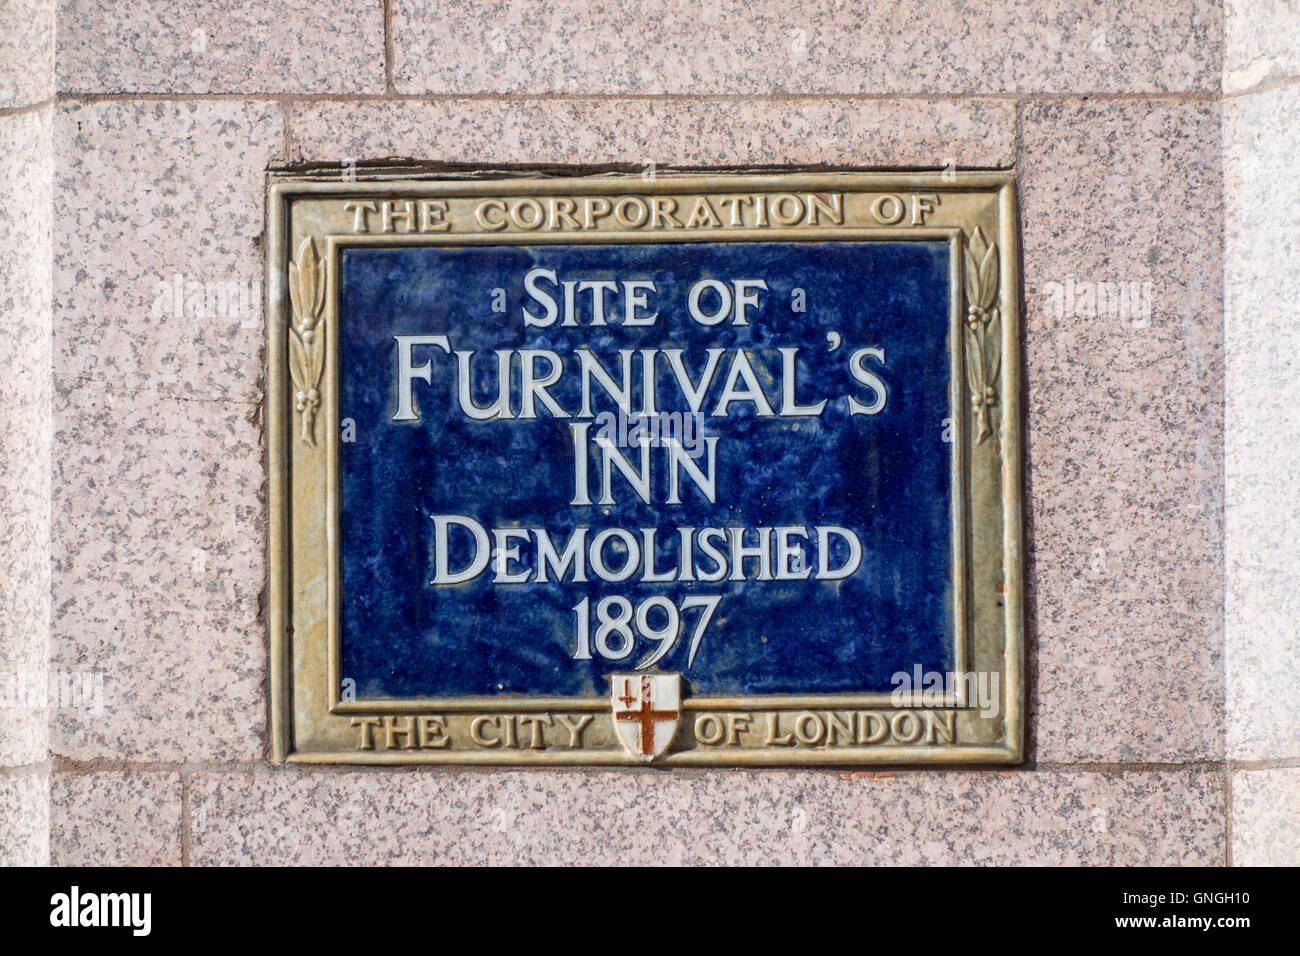 Blue plaque showing the former site of Furnival's Inn, demolished 1897. London, UK - Stock Image